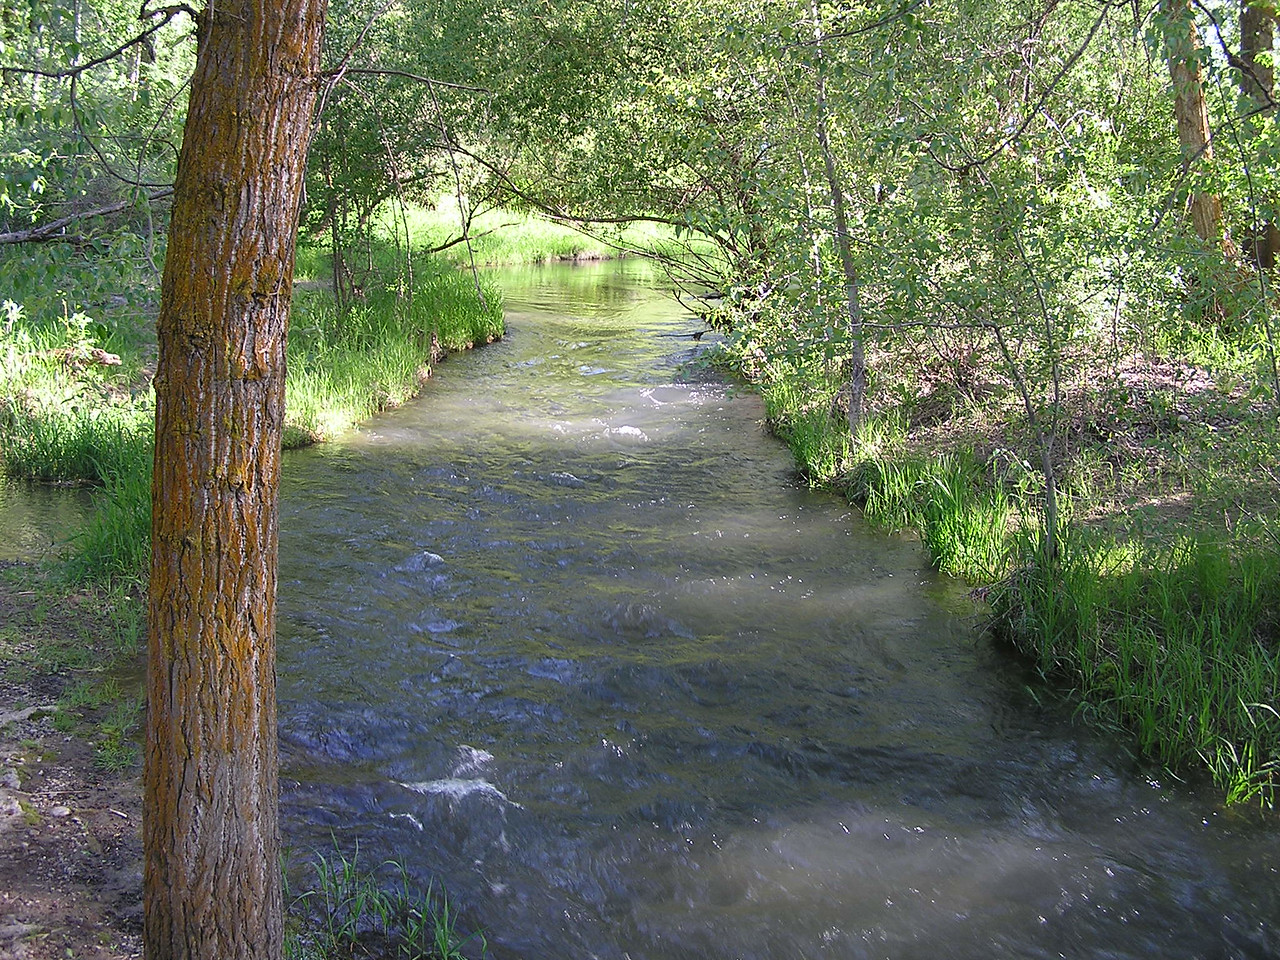 A side stream from a walking bridge in the park.